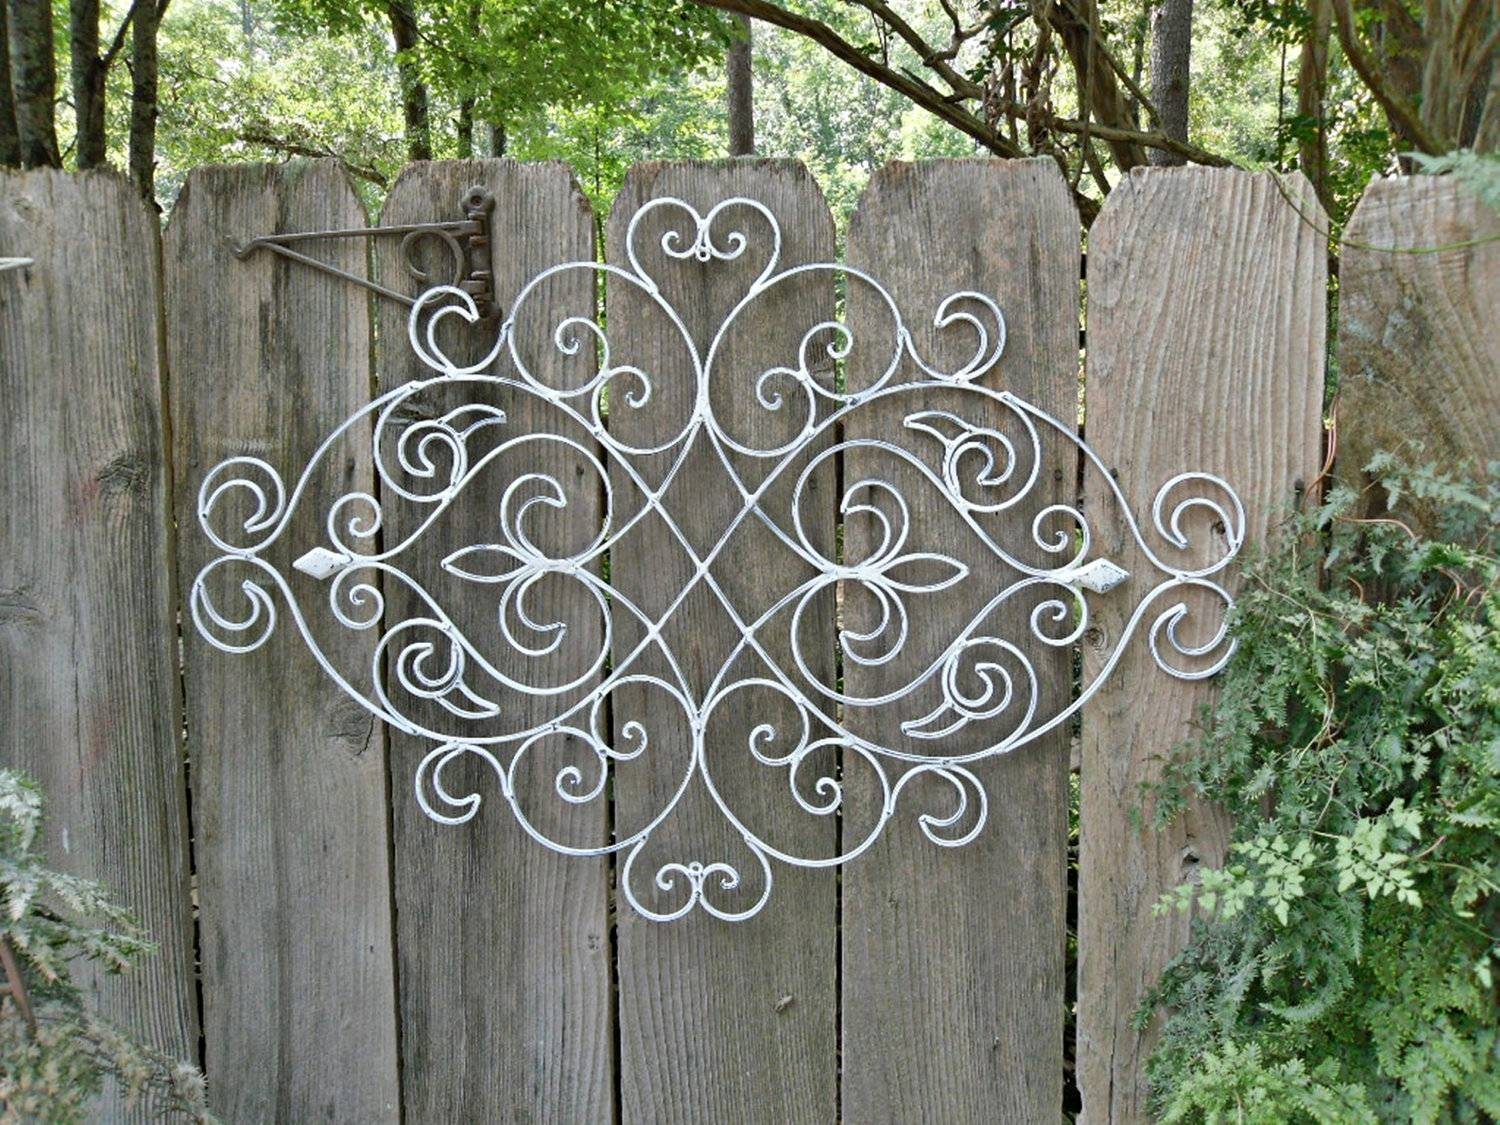 Outdoor Metal Wall Art Design Ideas | Indoor & Outdoor Decor Inside Best And Newest Exterior Metal Wall Art (View 12 of 20)